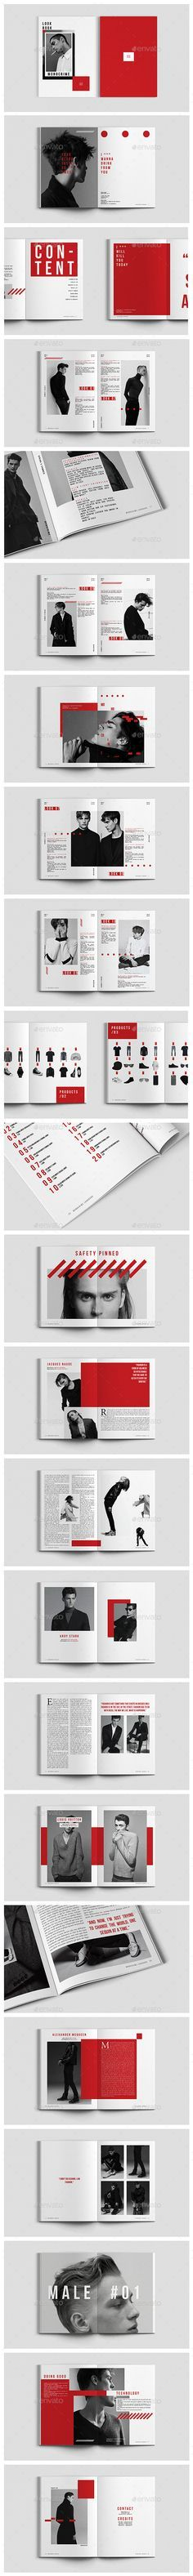 Fashion Magazine / Lookbook - Magazines Print Templates